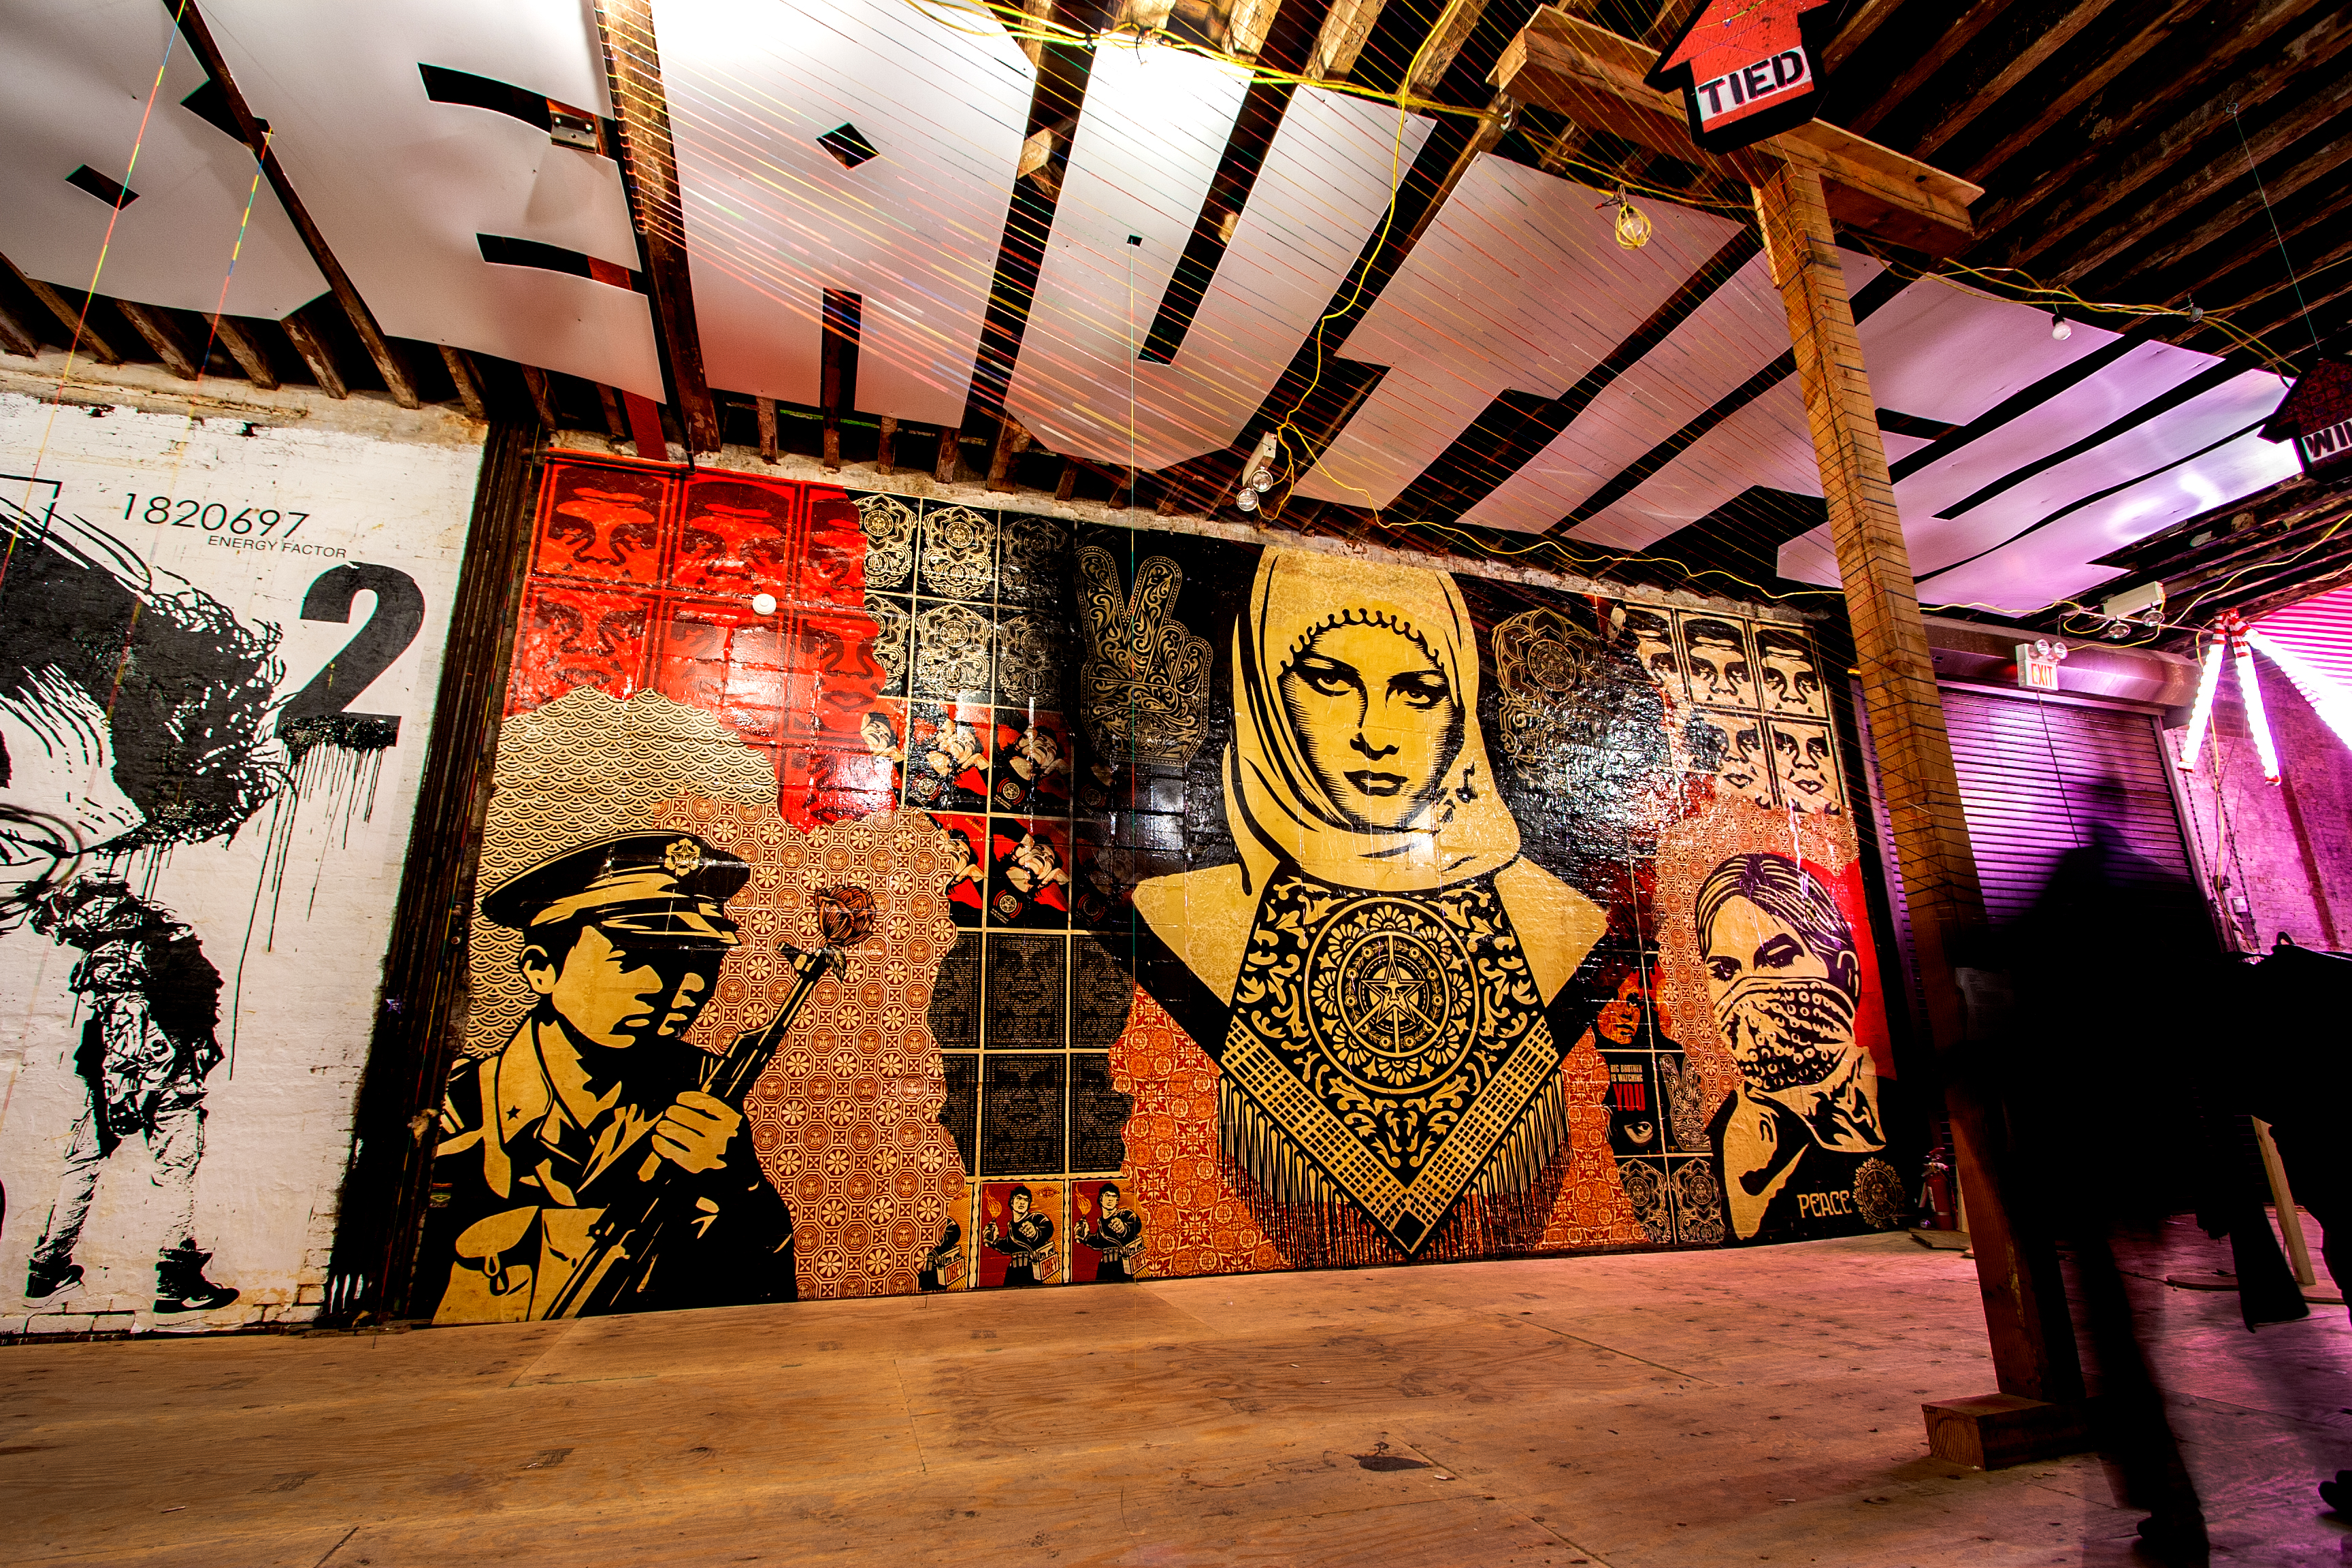 the-massive-west-wall-covered-in-works-by-wk-interact-and-shepard-fairey-on-the-ceiling